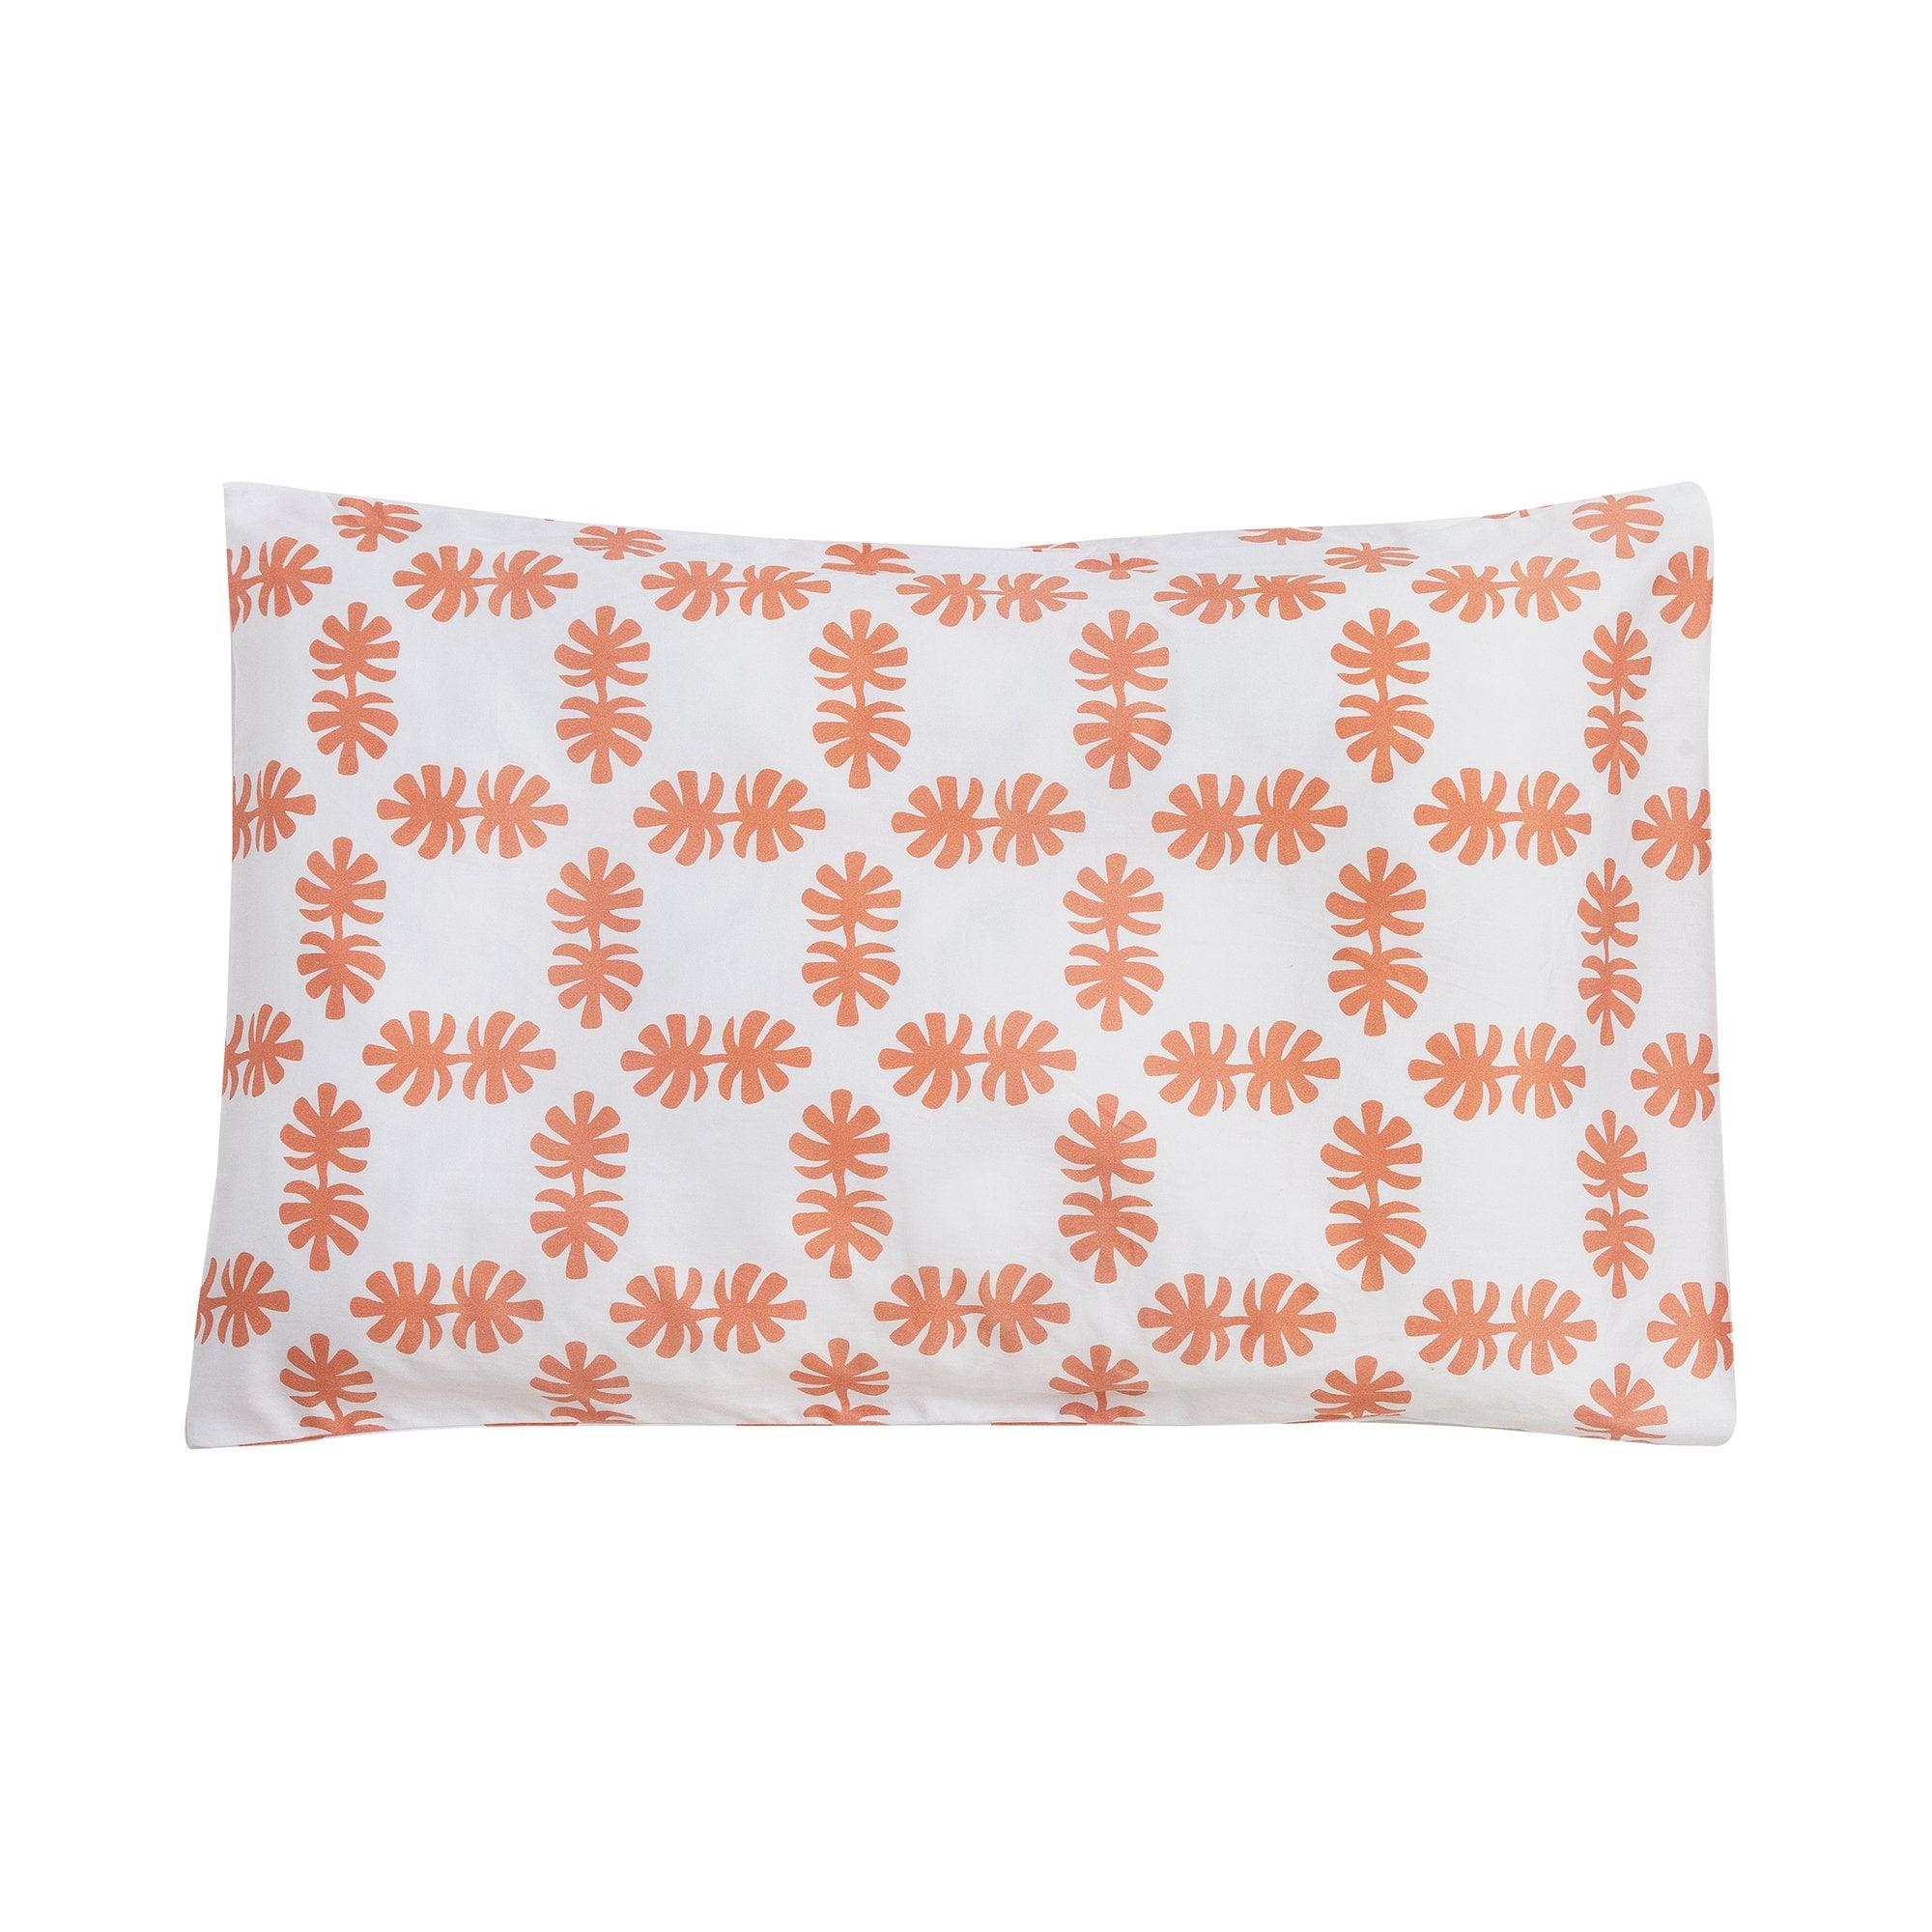 Coral Orange Coco Palm Pillowcase